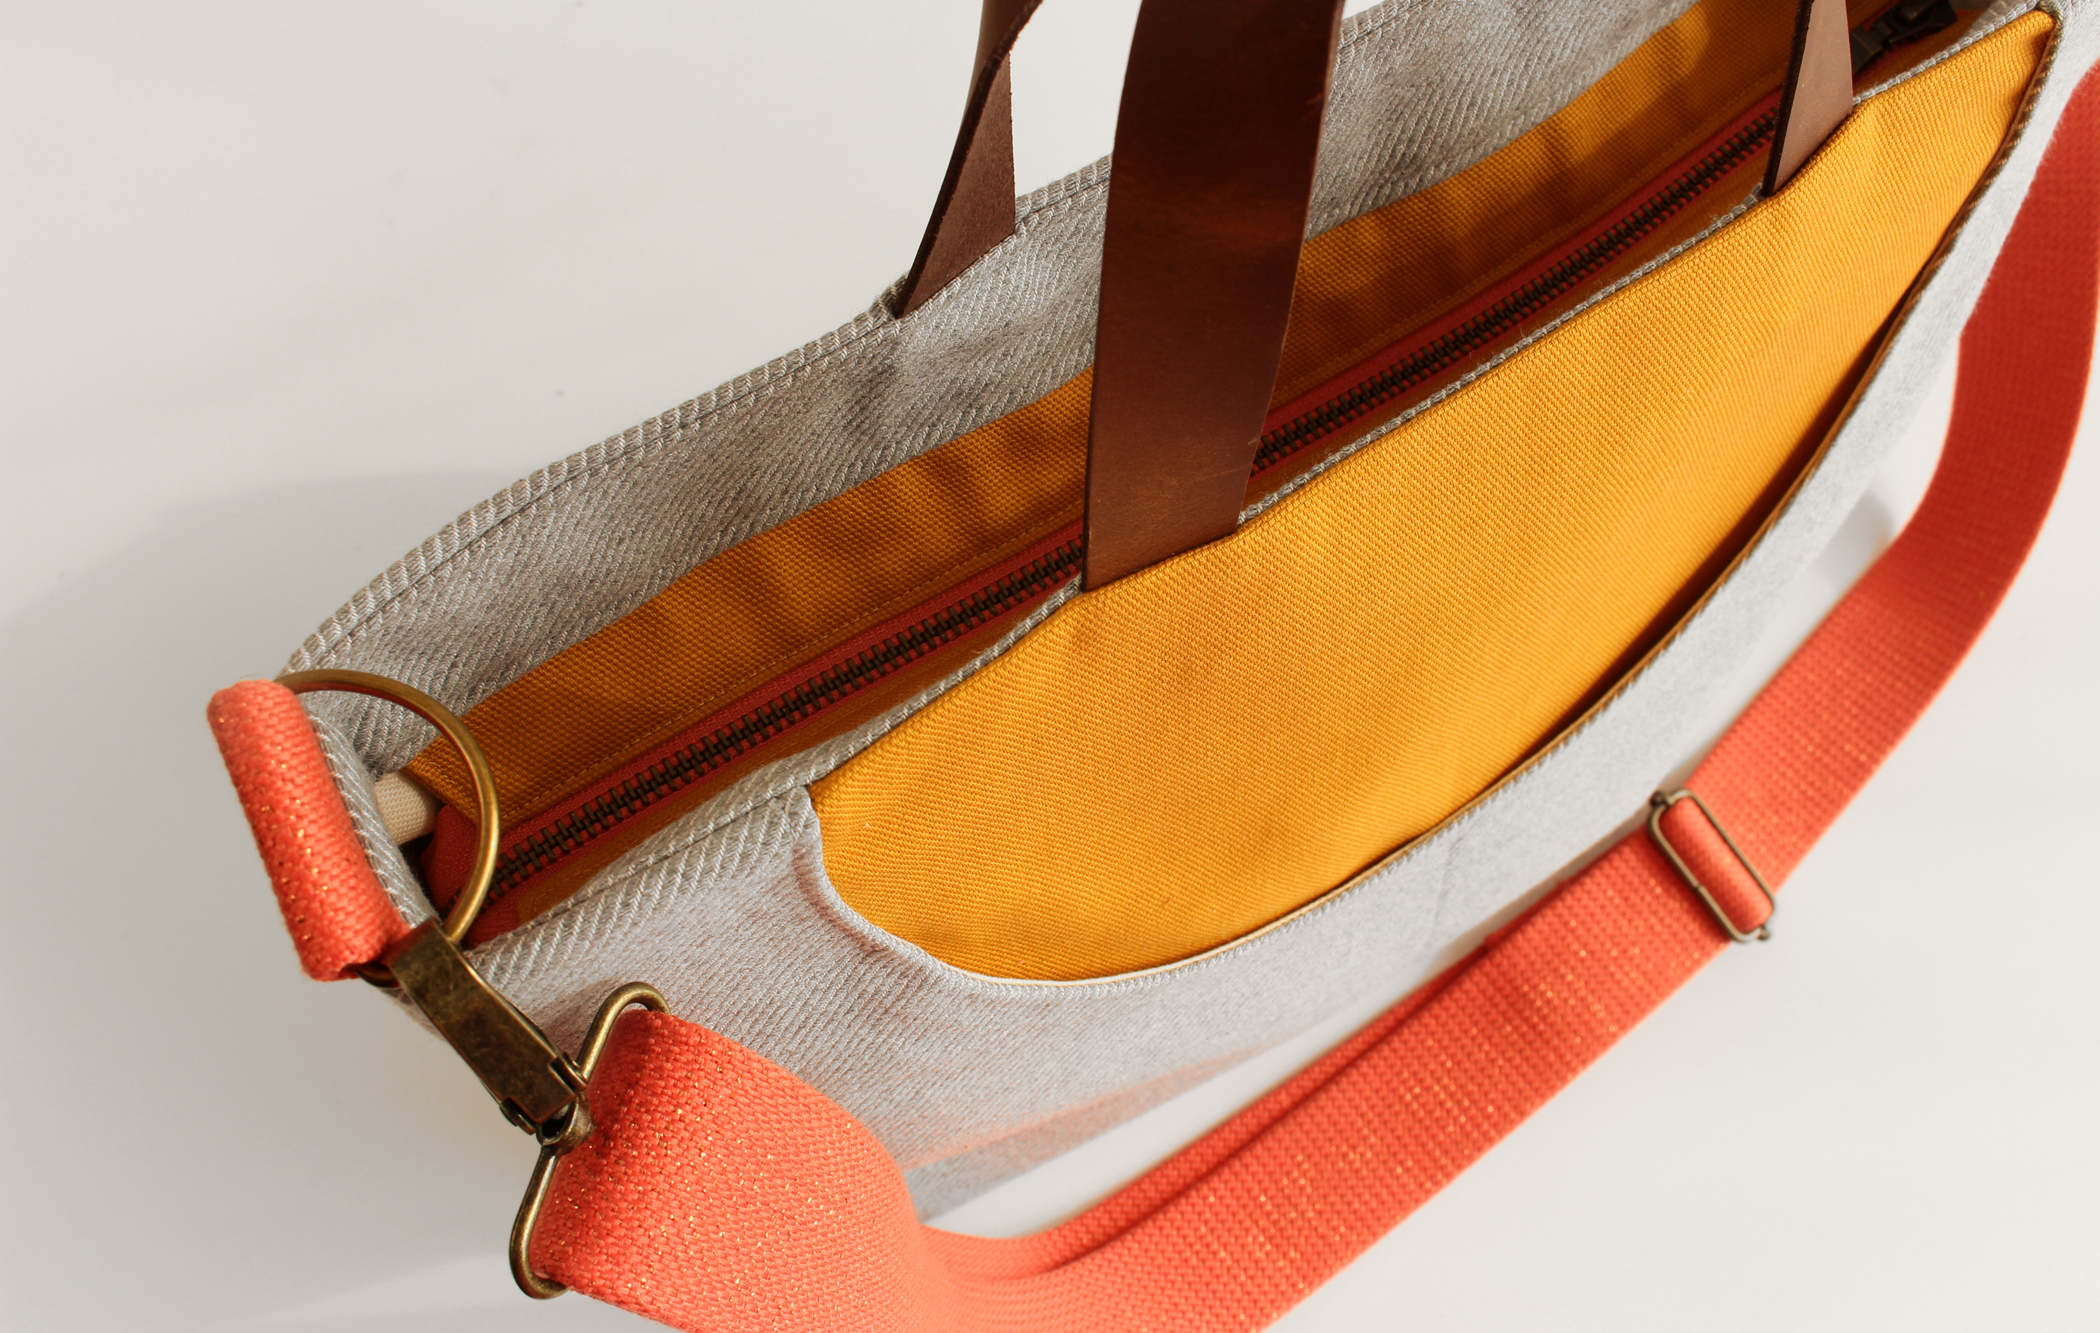 Close up of zip closure of yellow and grey MidnightSUN bag